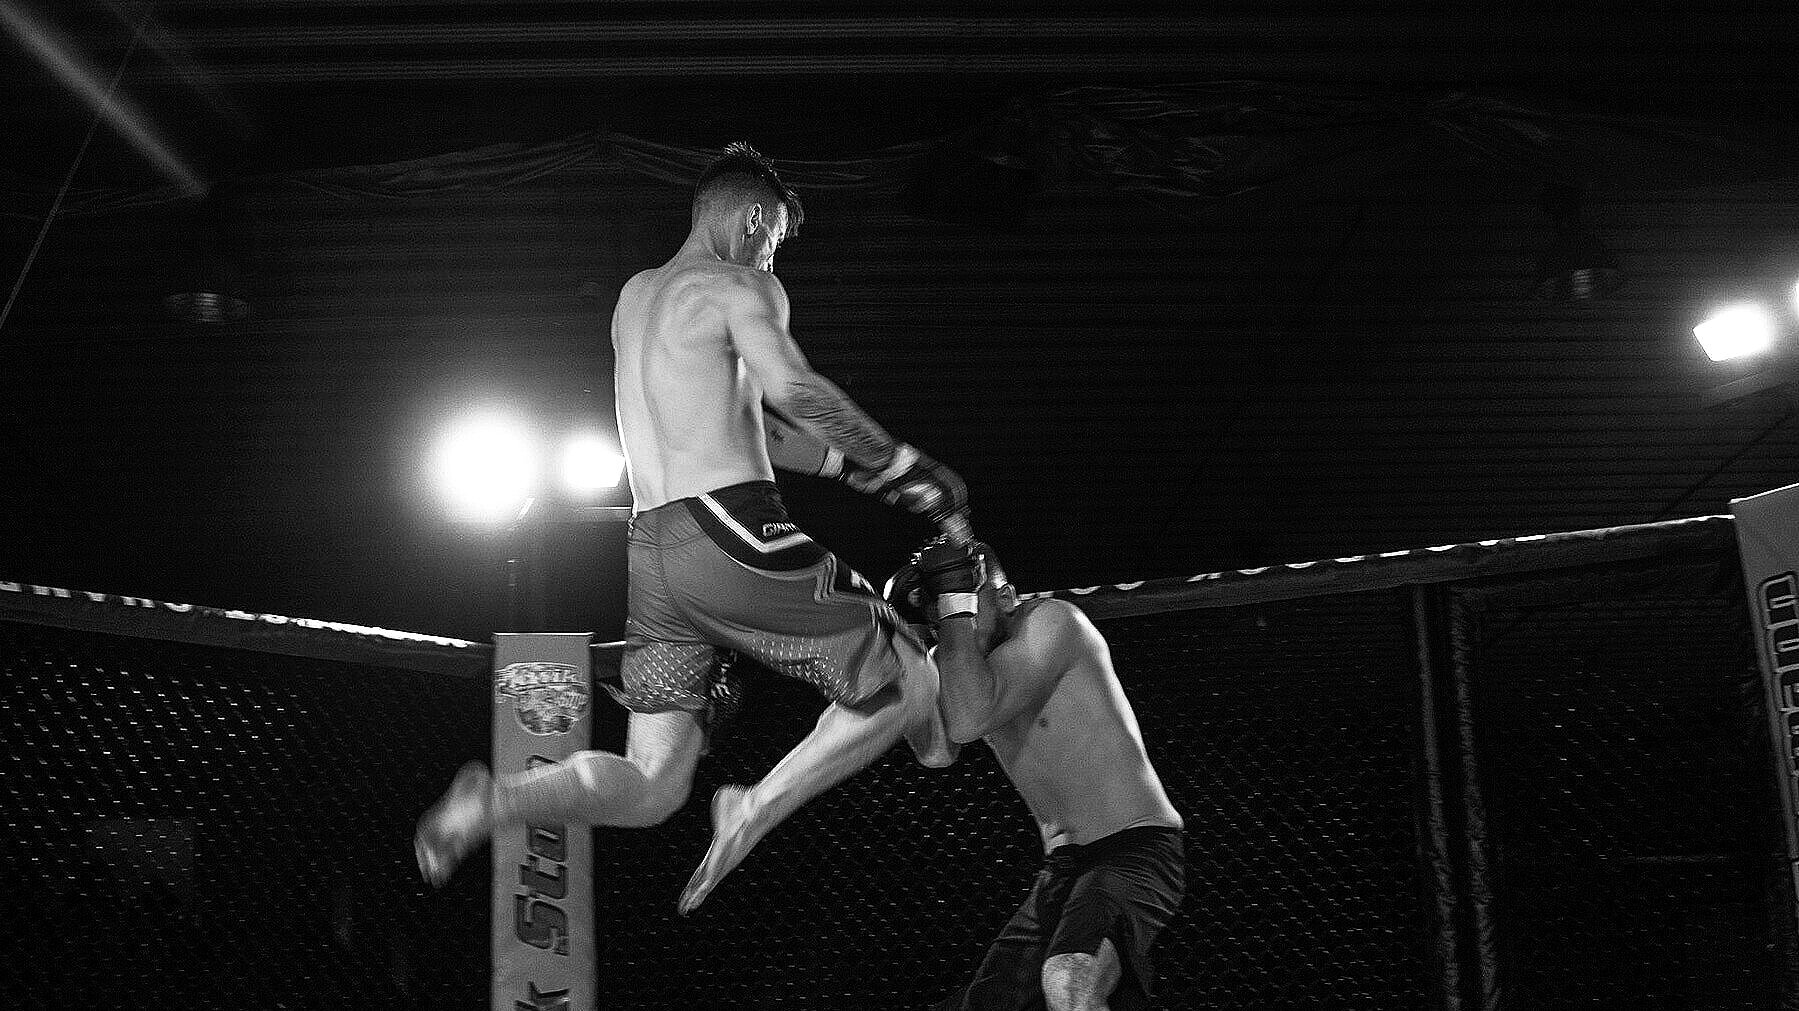 FIGHT TEAM - PRO AND AMATEUR MMA